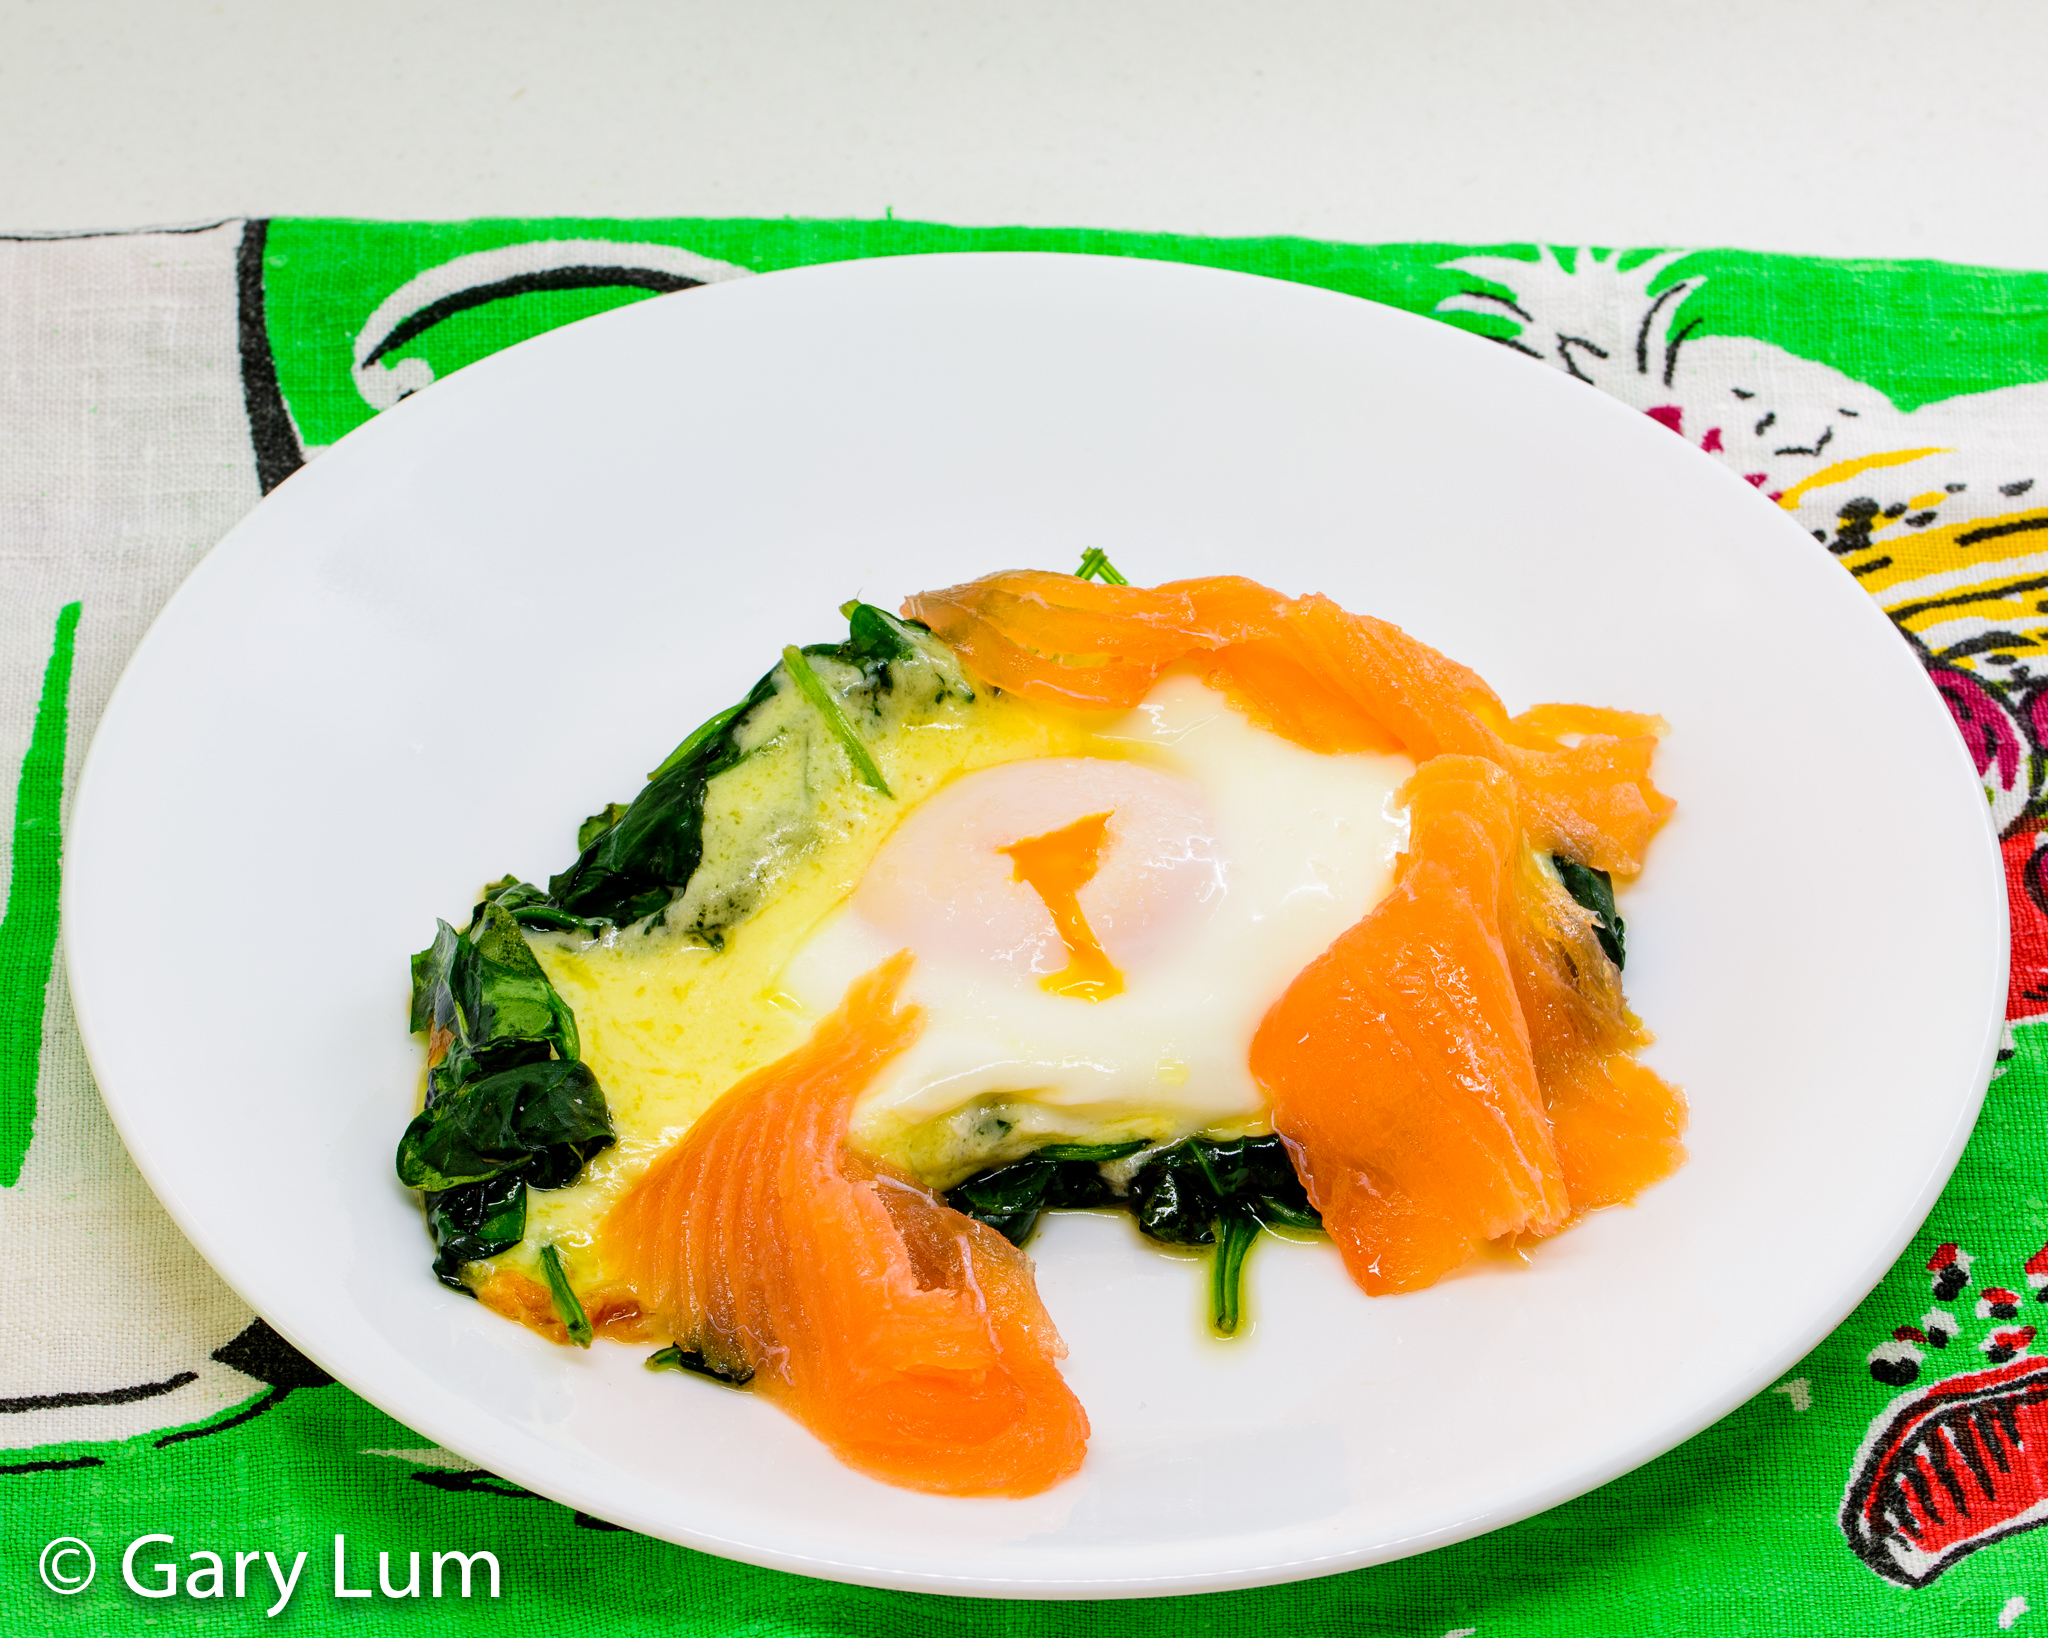 Steamed egg, melted cheese, wilted spinach, and smoked salmon. Gary Lum.